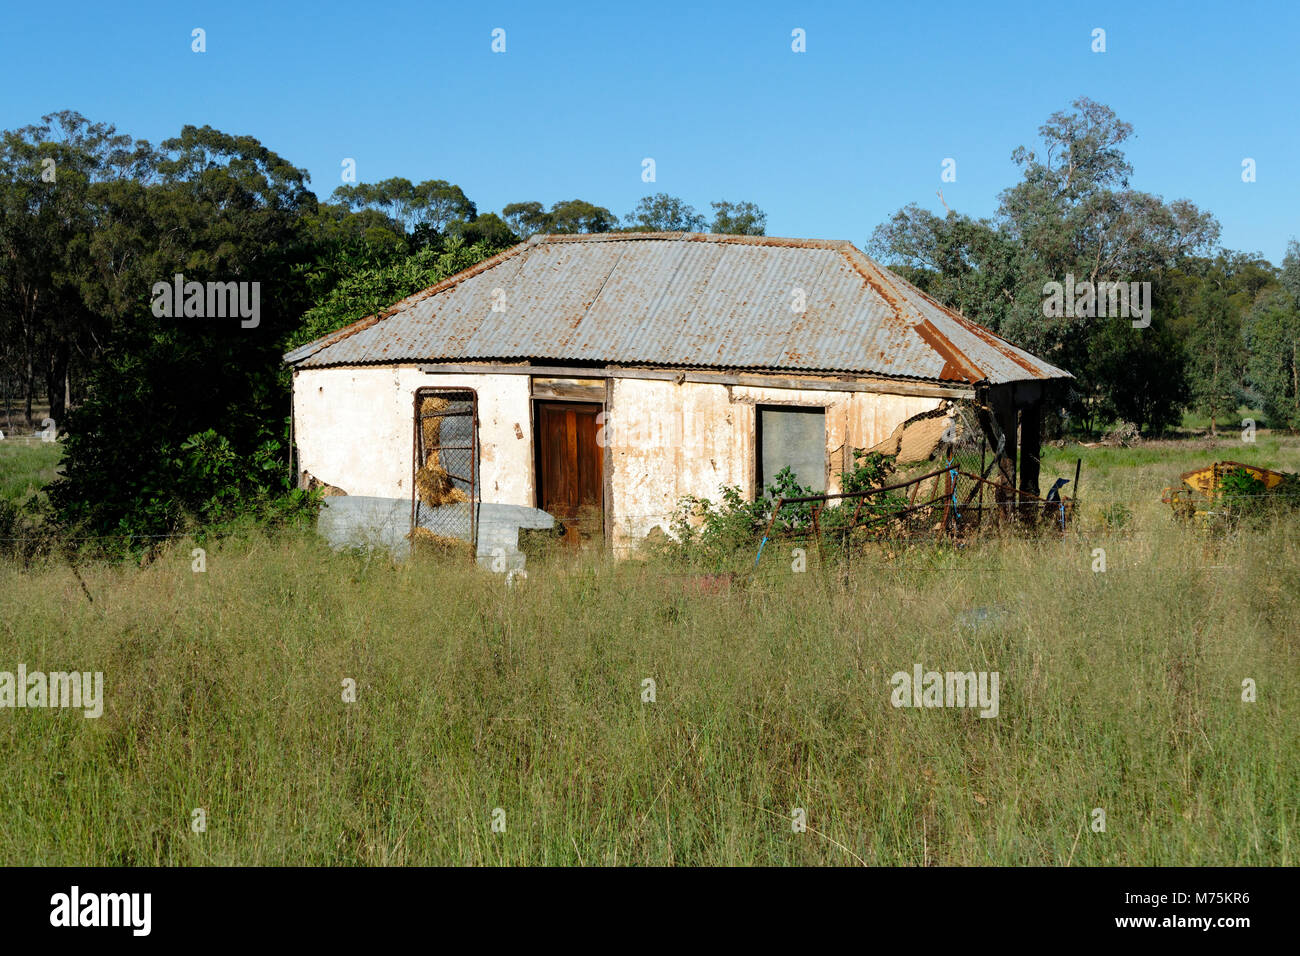 Abandoned country home from 19th century, New South Wales, Australia. - Stock Image